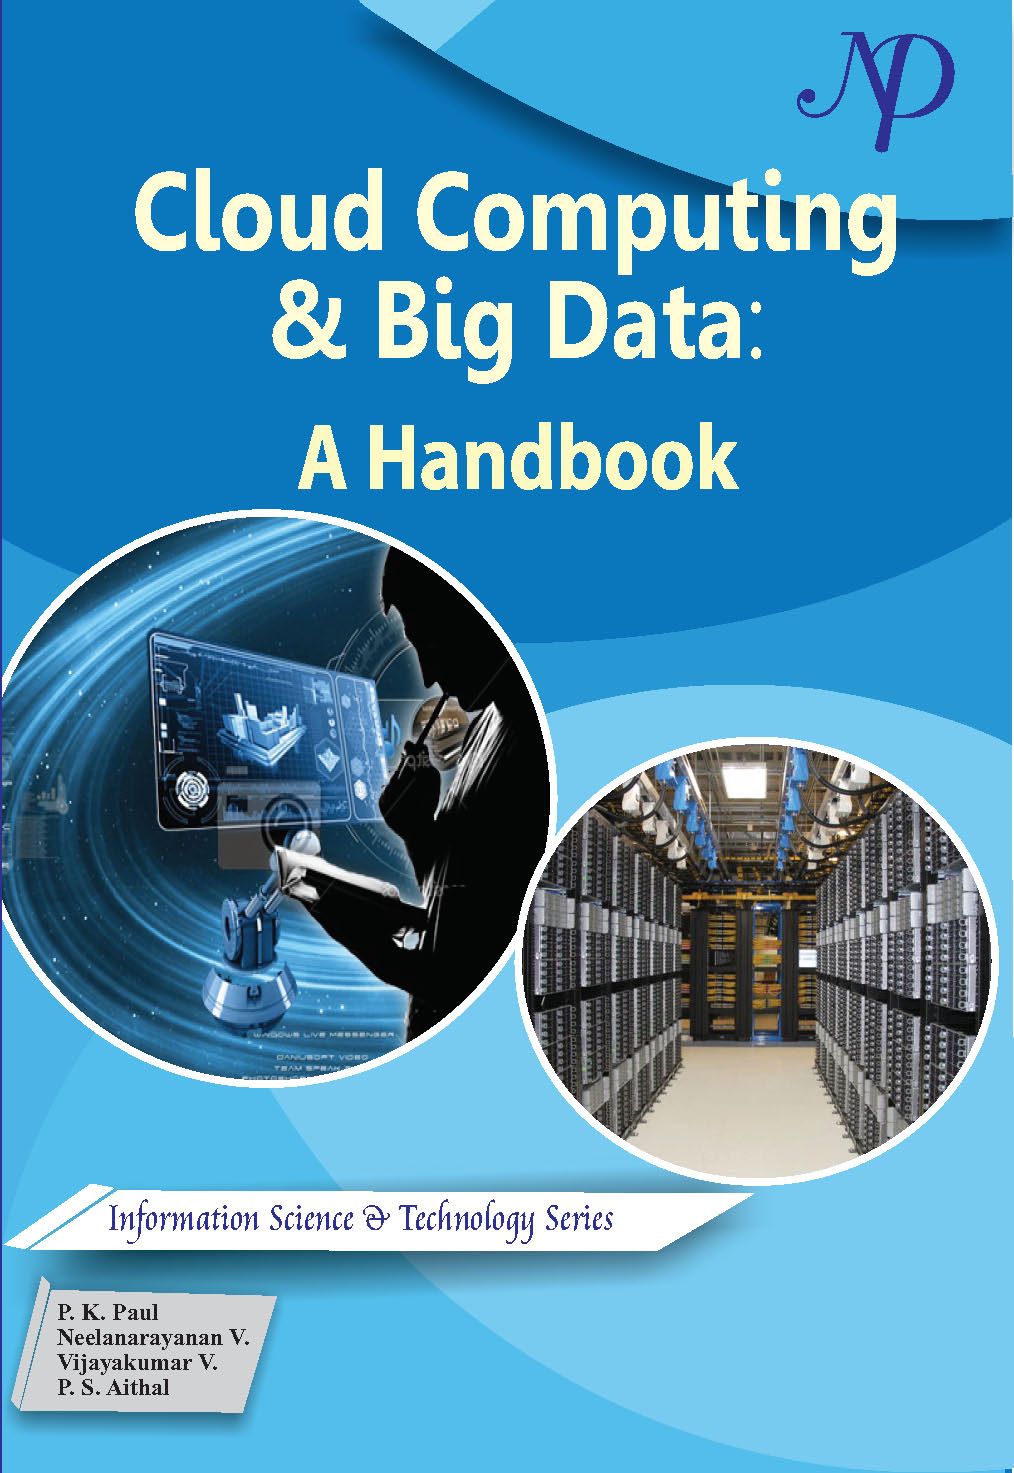 Cloud computing.cover page.jpg